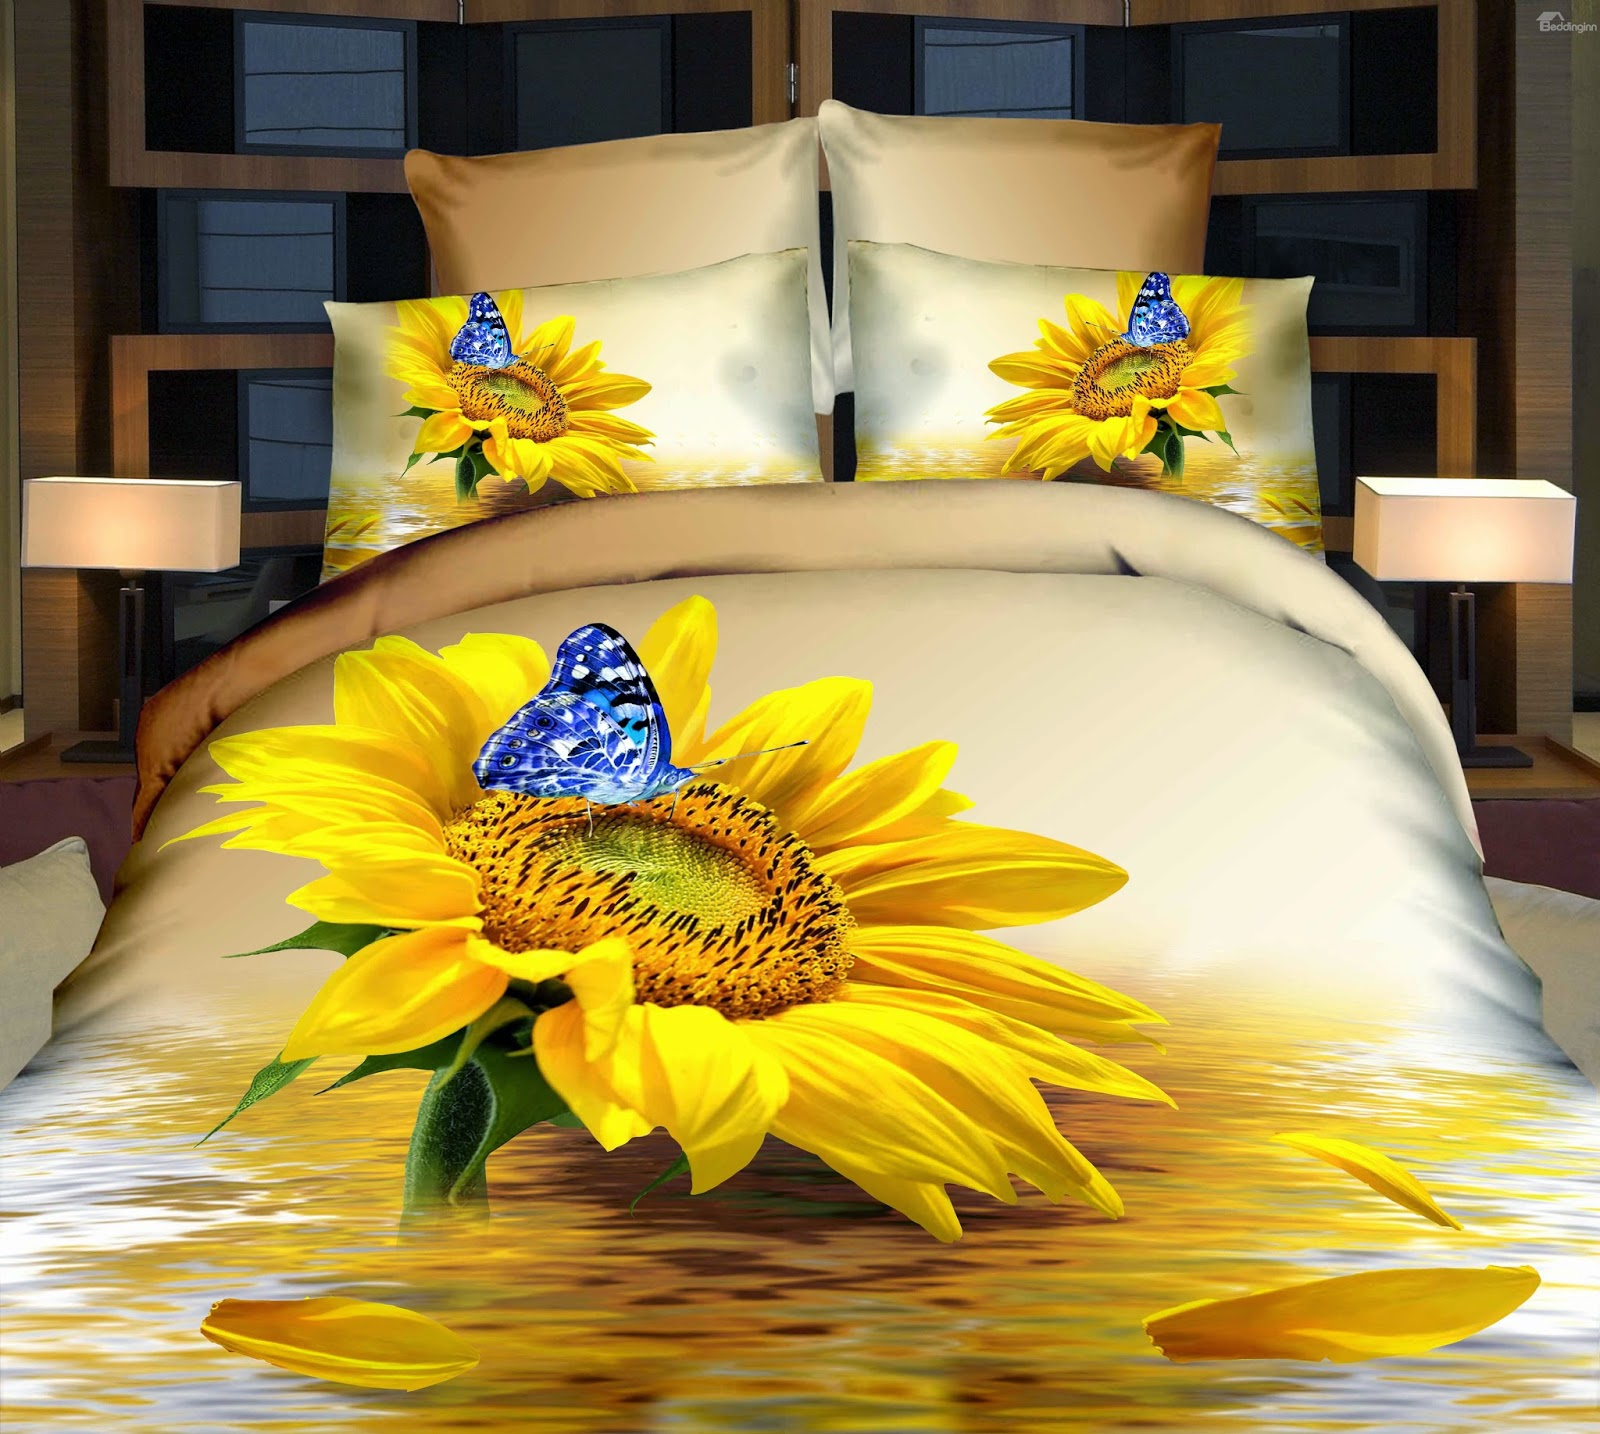 http://www.beddinginn.com/product/Charming-Sunflower-And-Blue-Butterfly-Print-4-Piece-Duvet-Cover-Sets-10987568.html